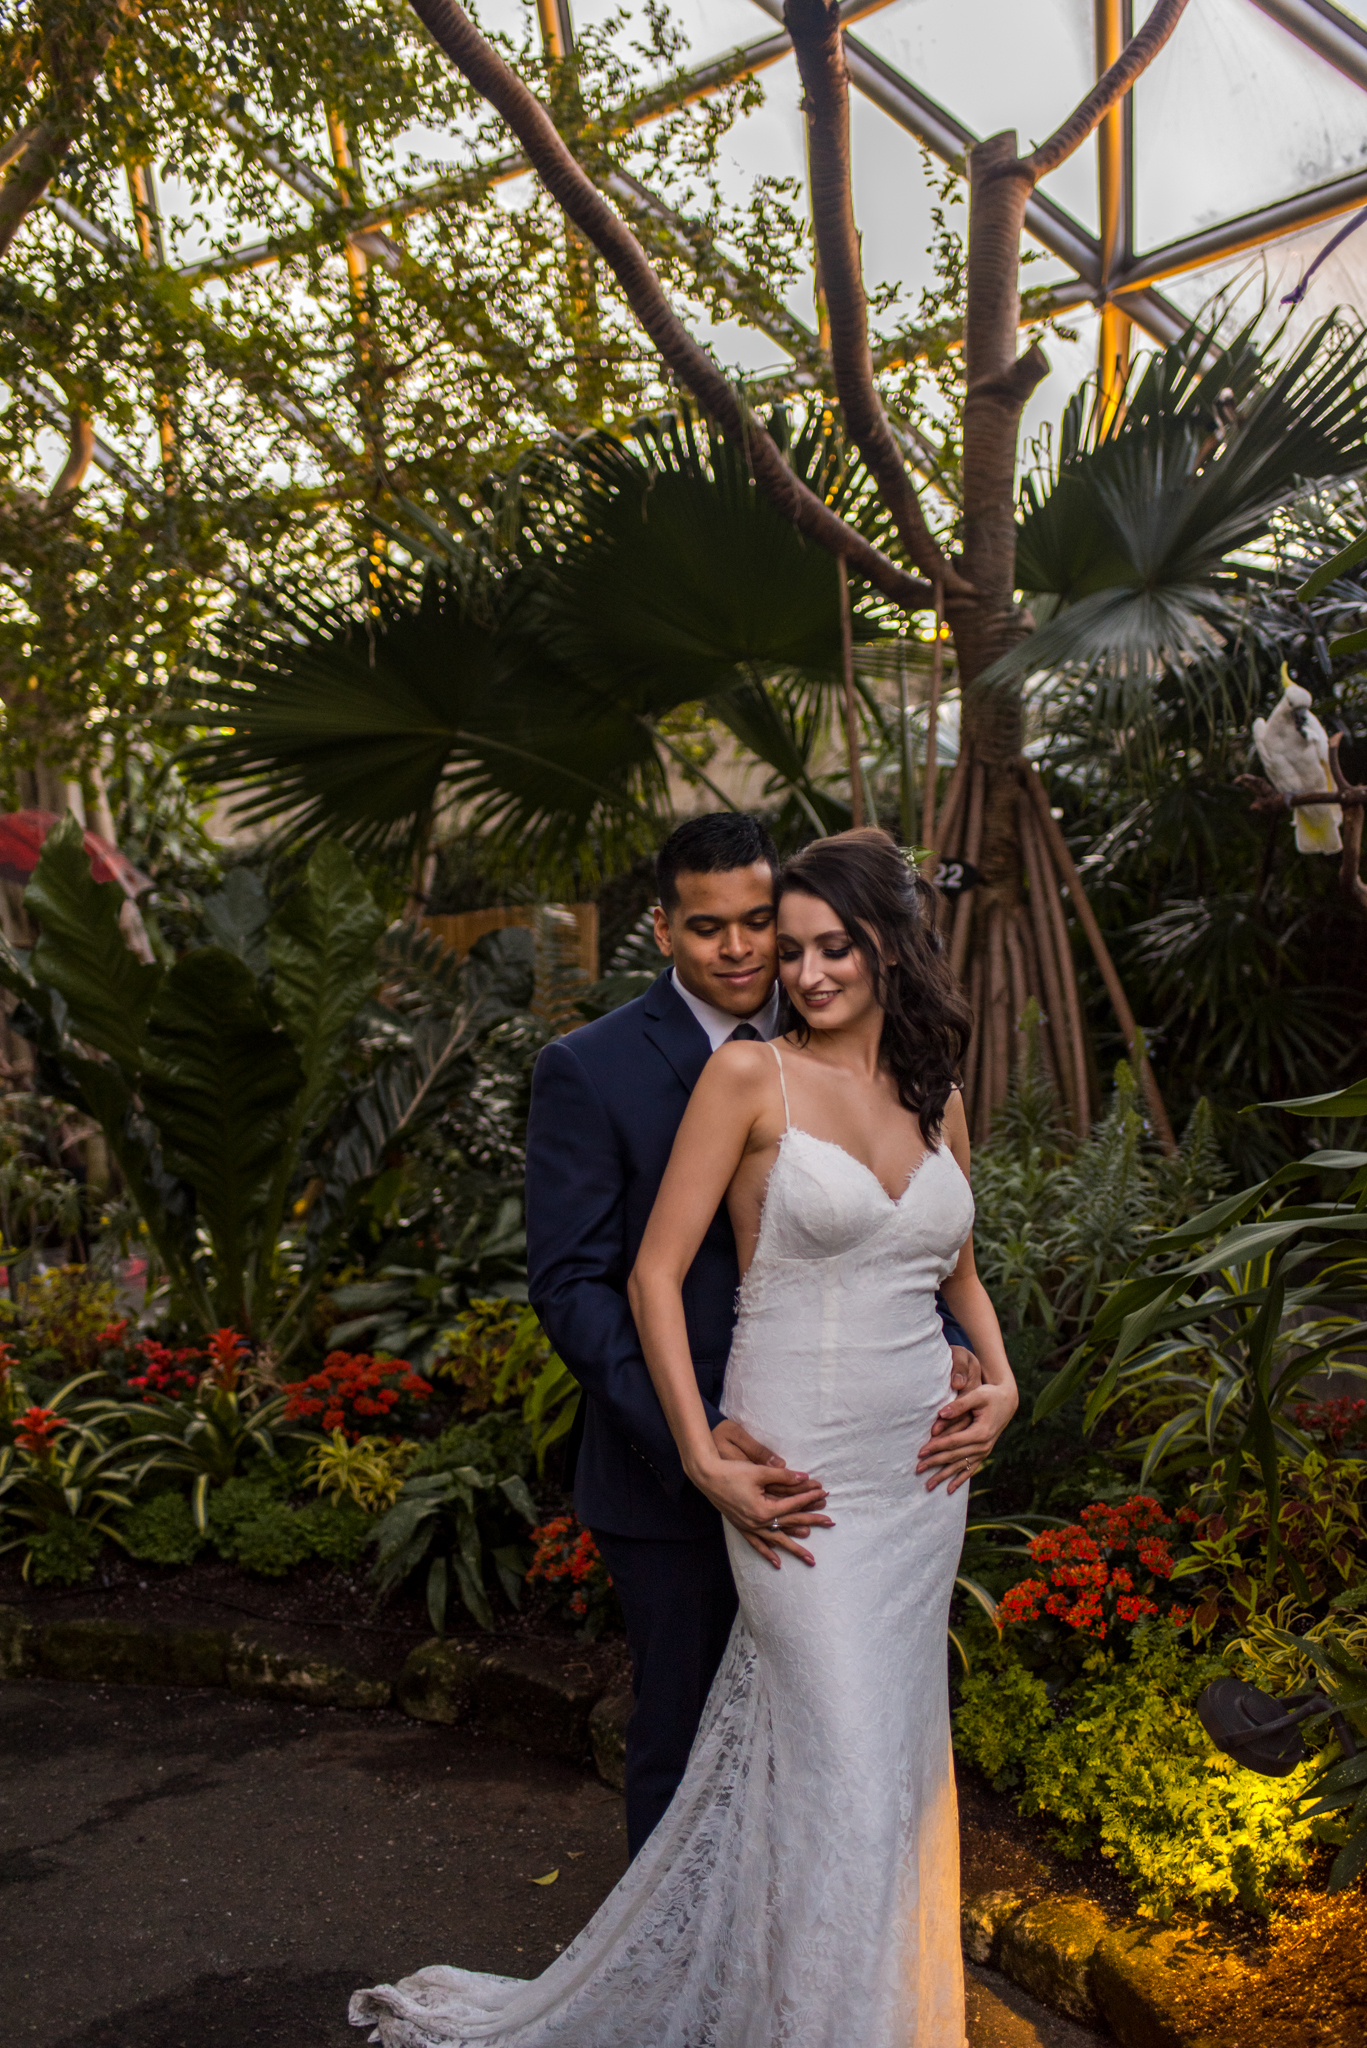 Queen Elizabeth Park Wedding Photographer-68.jpg